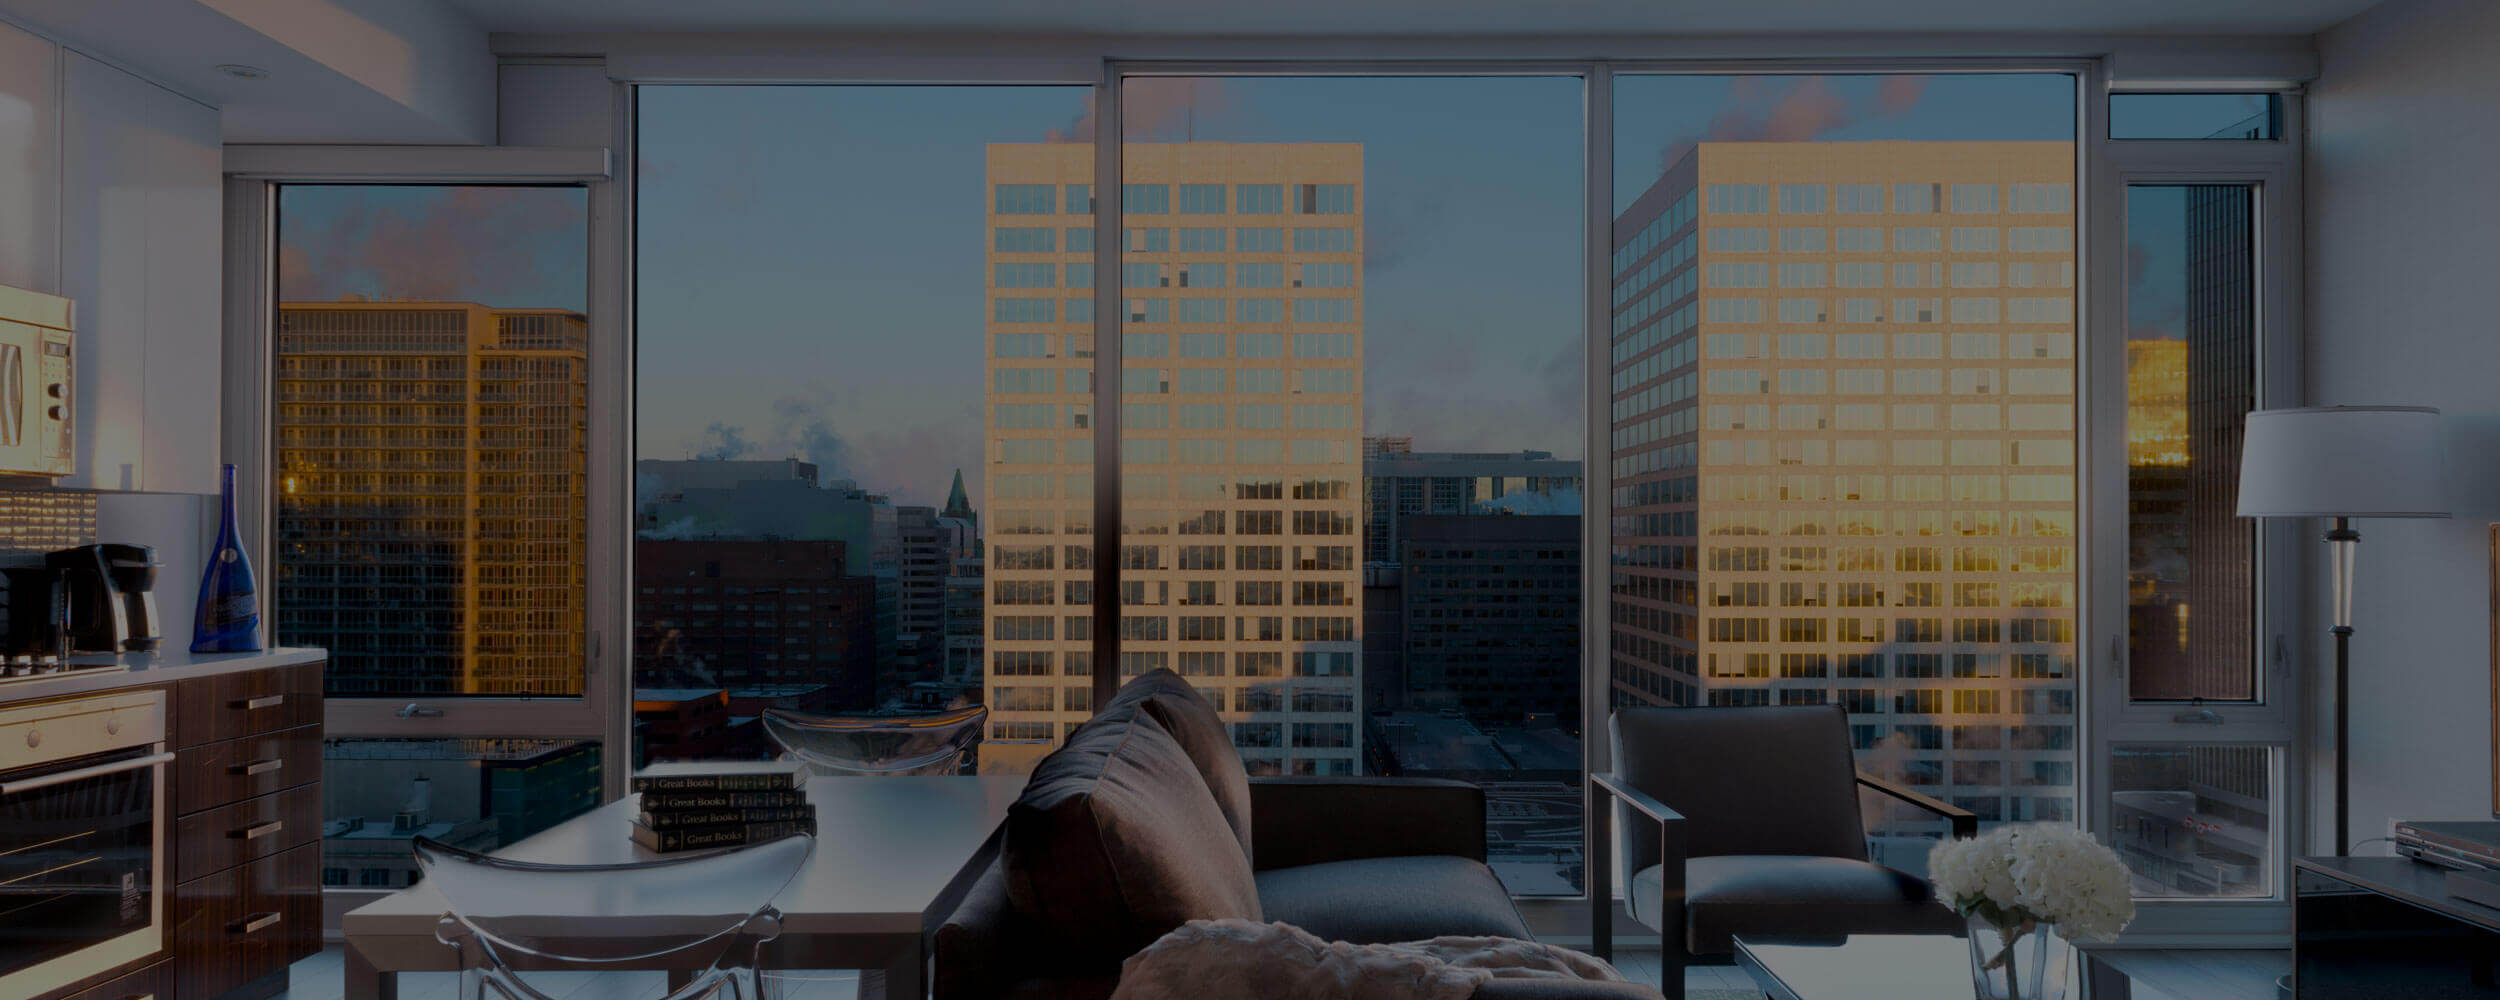 SoHo Lisgar Residences in Ottawa furnished bedroom suite with living and kitchen, overlooking downtown in evening